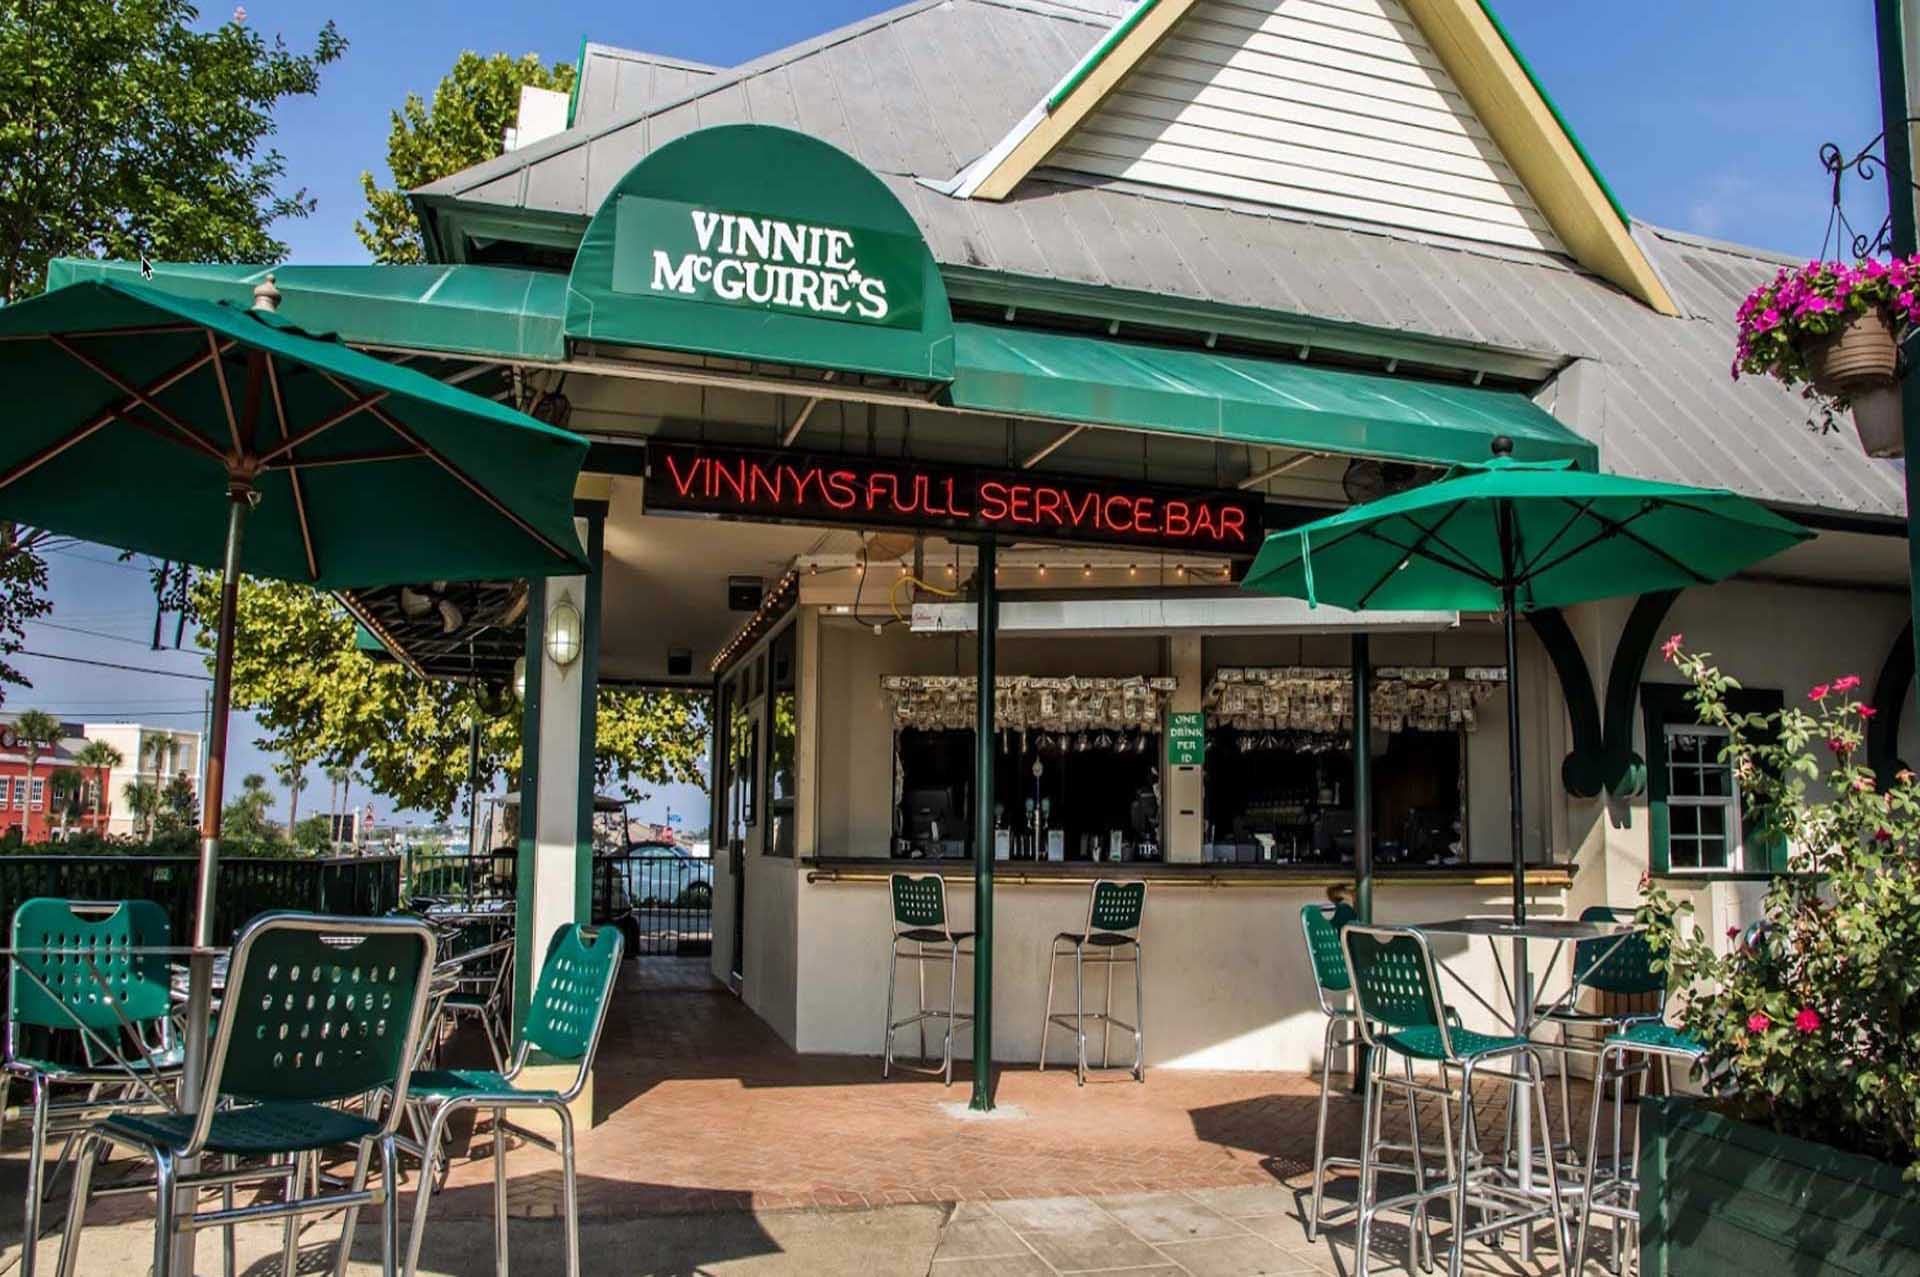 outside front view of Vinny McGuire's Pizza restaurant with patio furniture